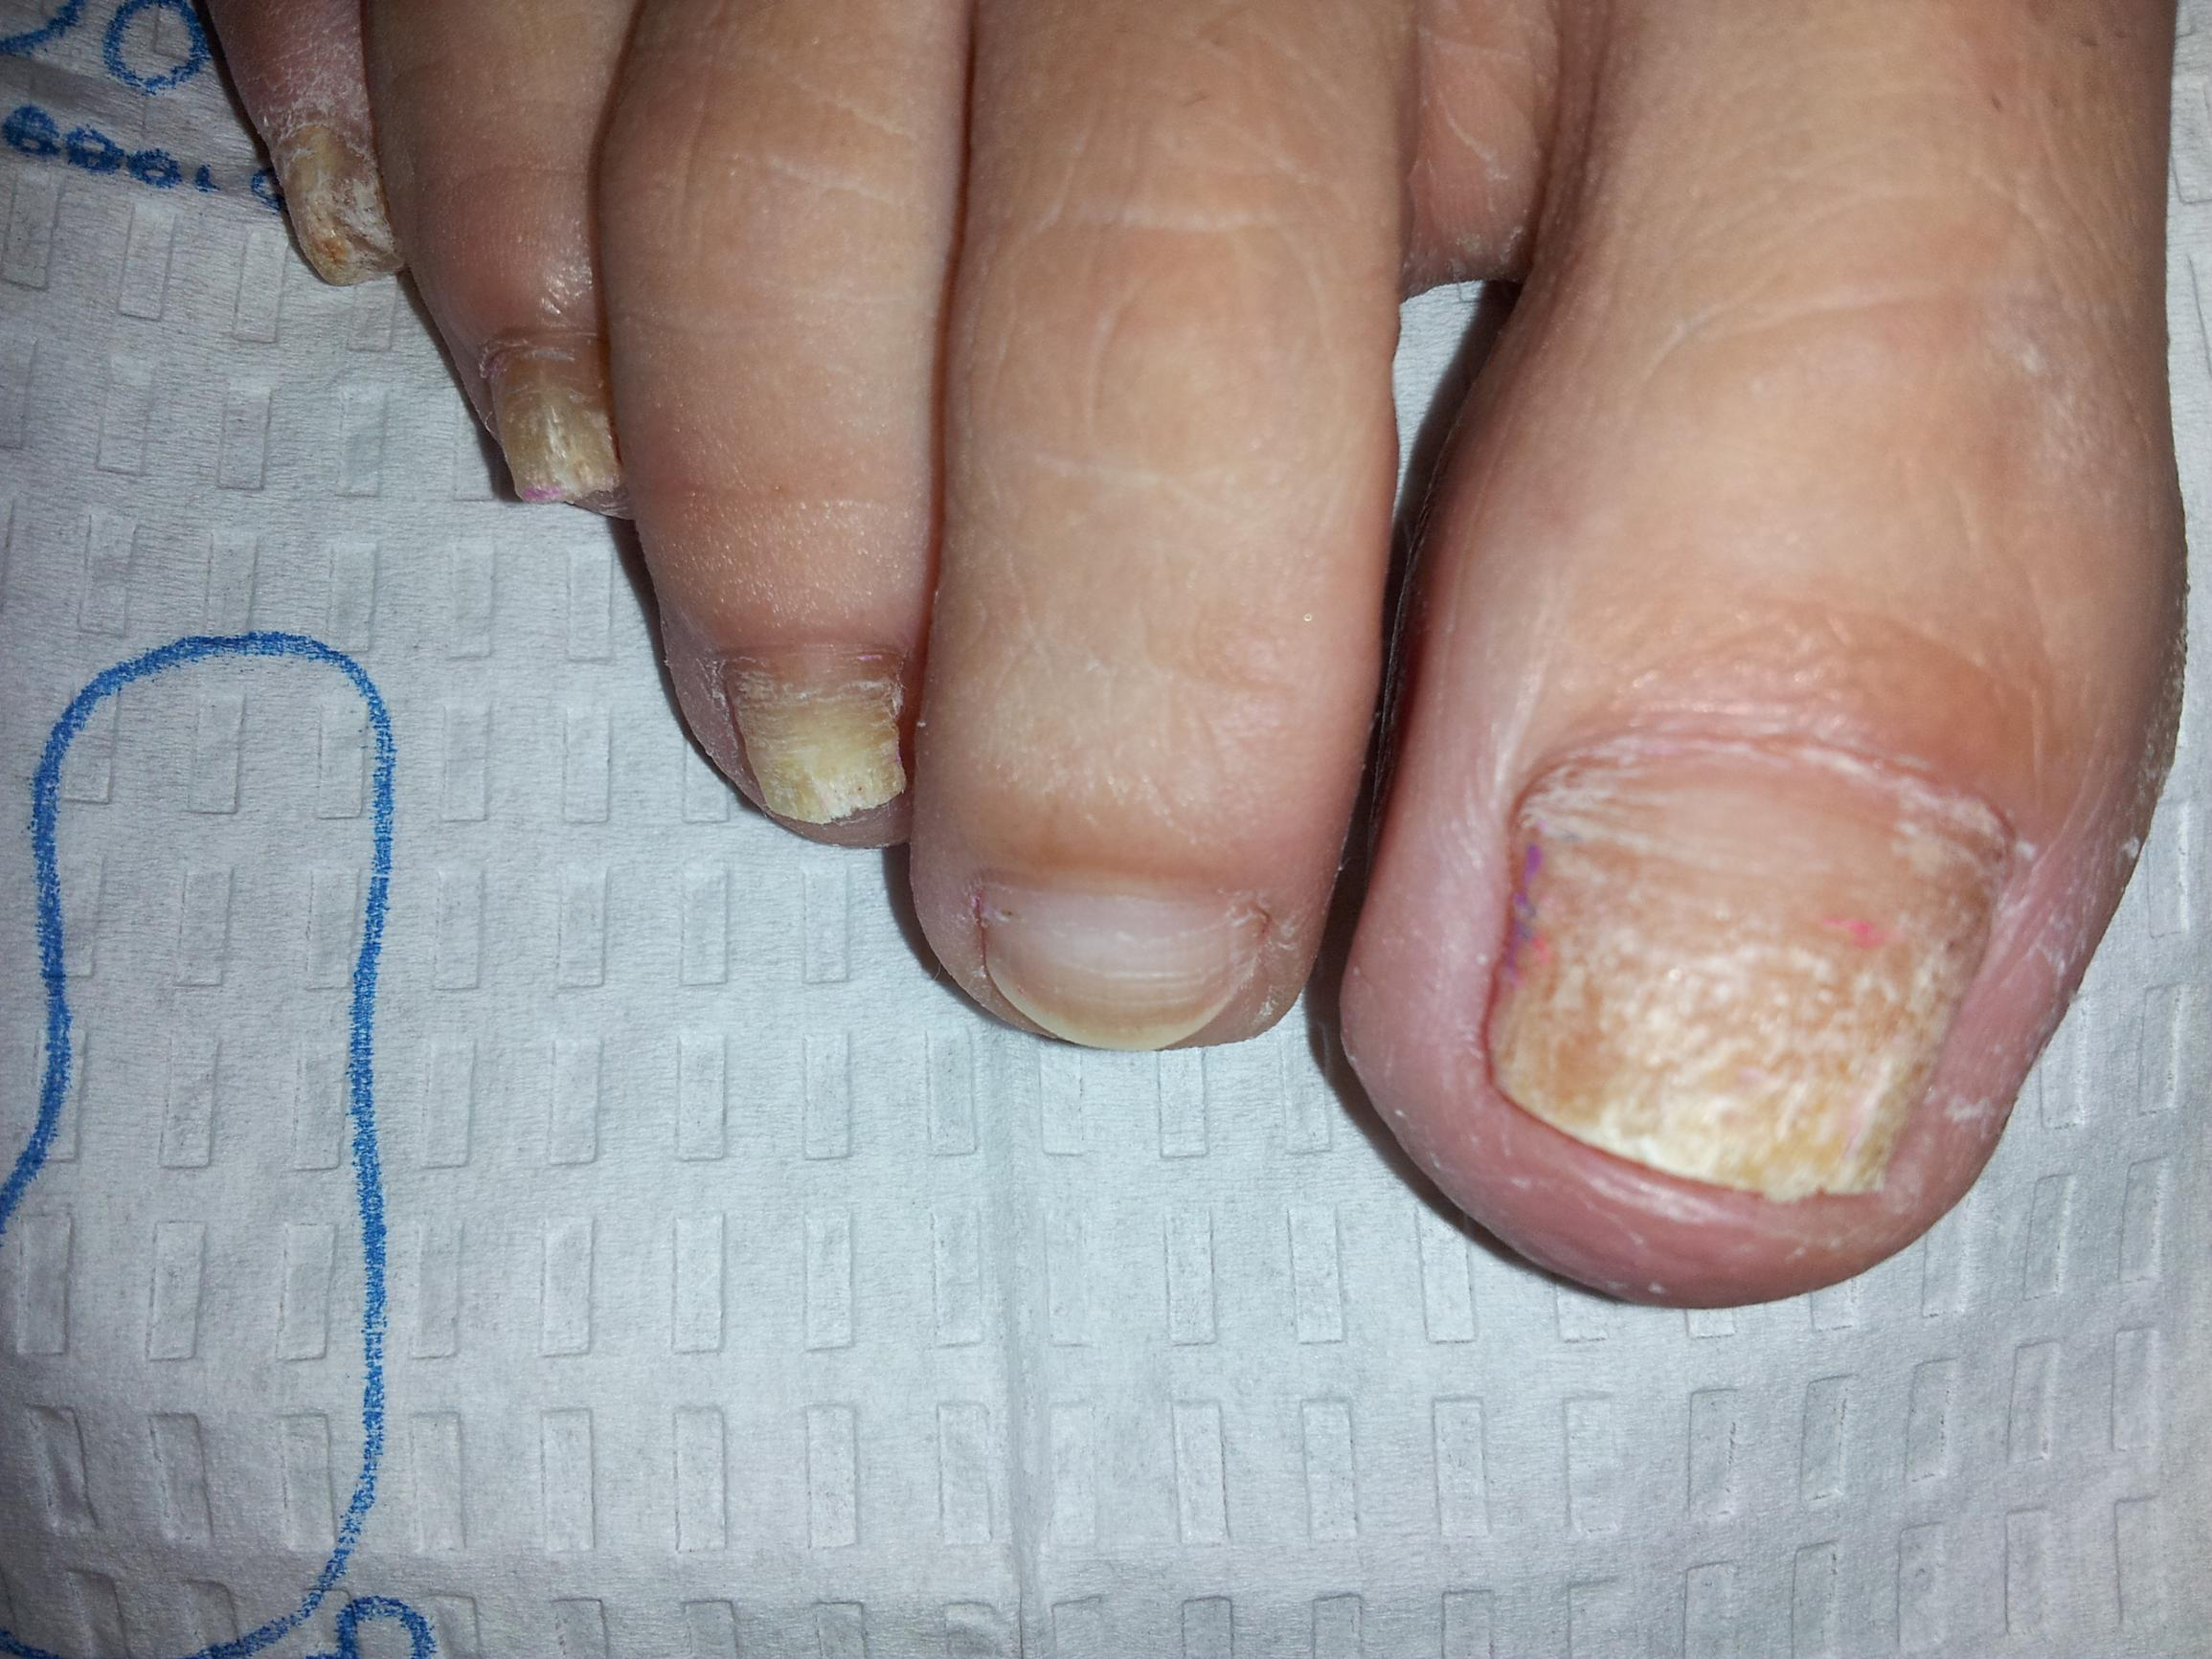 Laser Nail Fungus Treatments, Nail Fungus Treatment, laser nail, laser fungus westminster, nail infection, nail disease, Medication for nail fungus, Laser toenail, laser fingernail, fingernail infection, laser nail fungus westminster